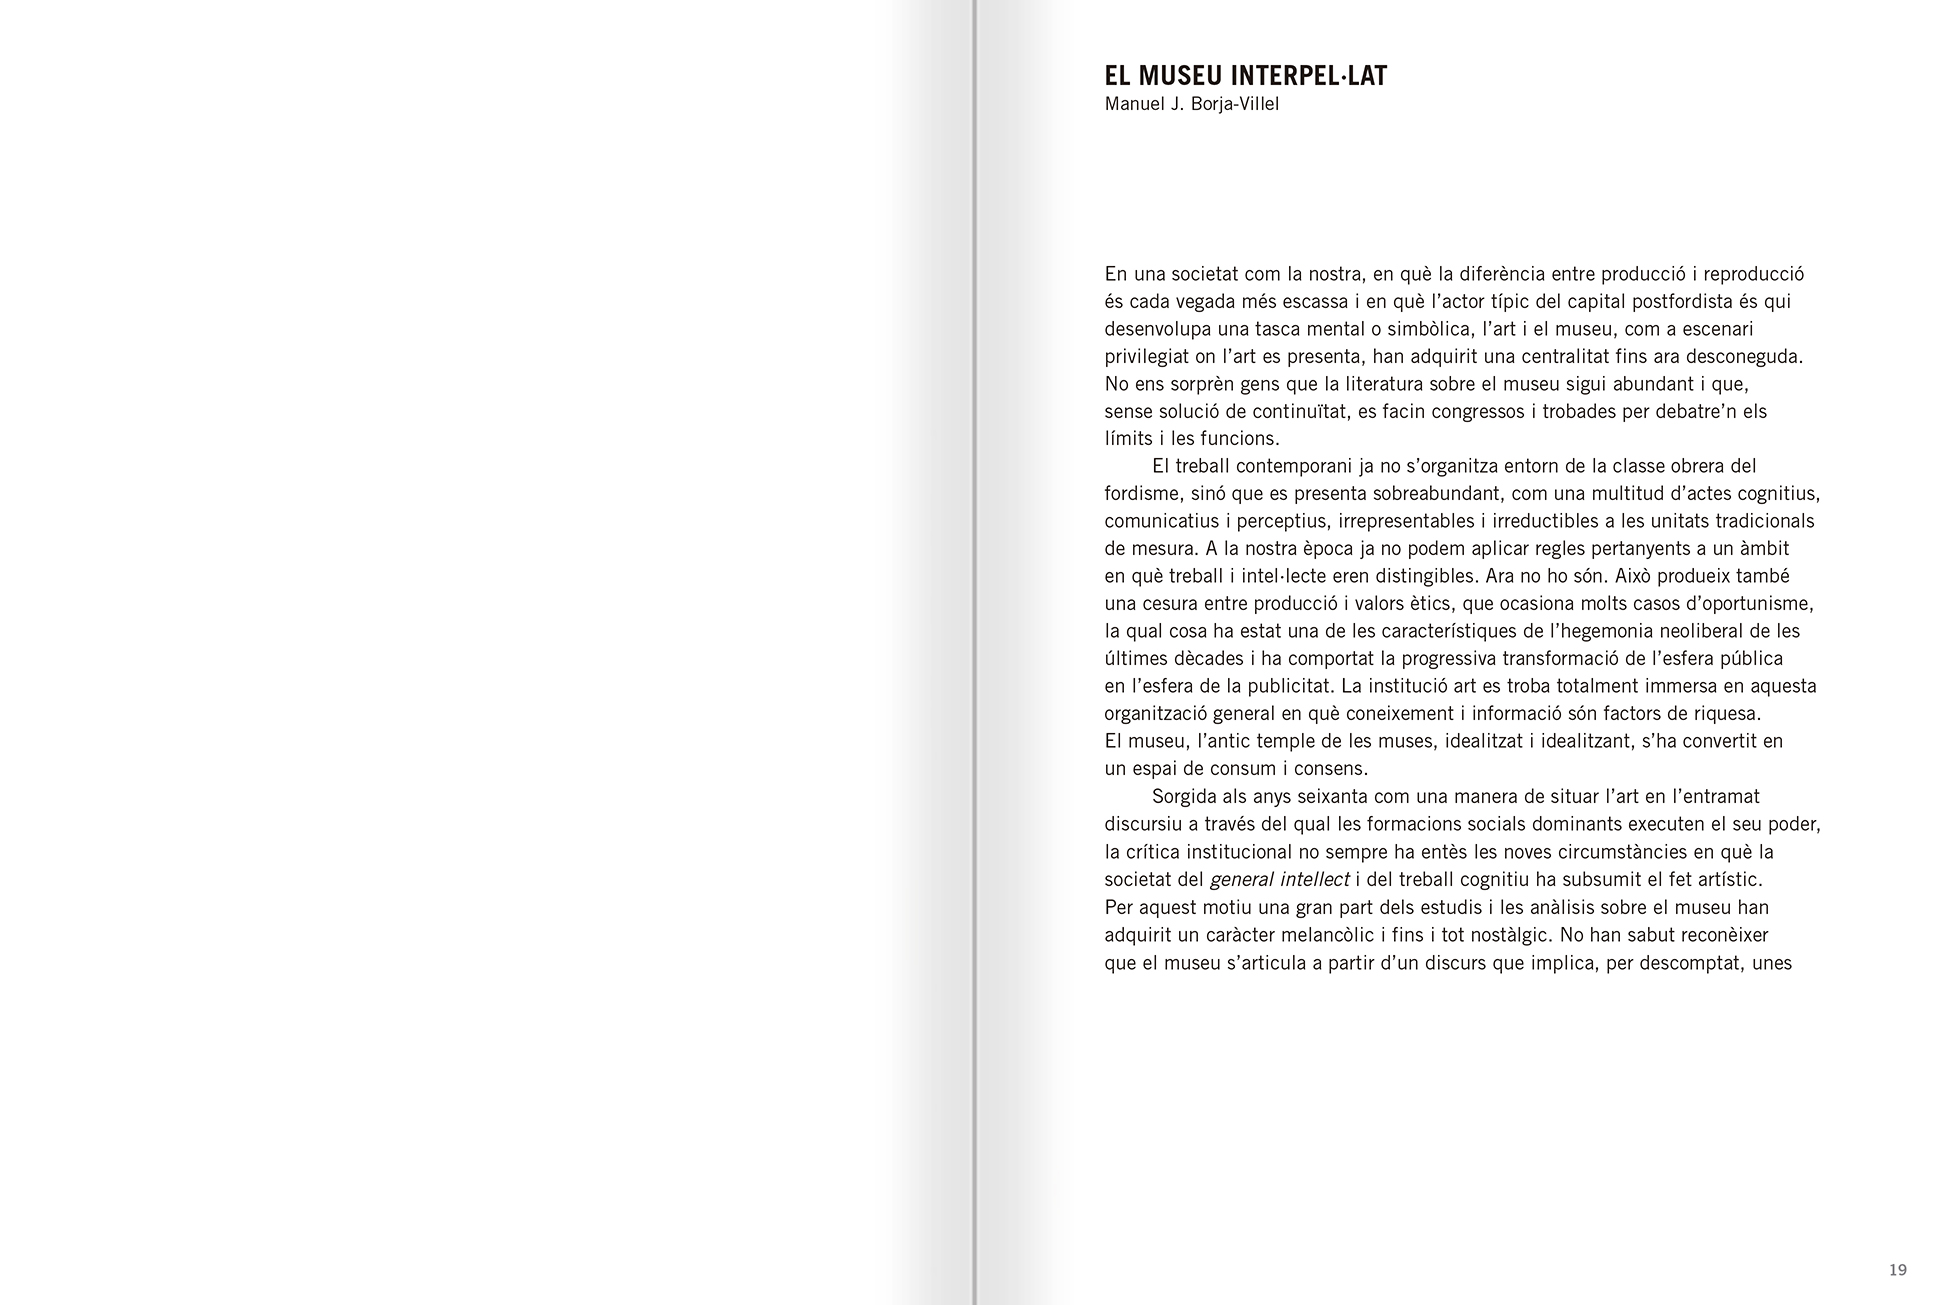 Selection from the catalogue 'Relational Objects. MACBA Collection 2002-07', pages 18 and 19